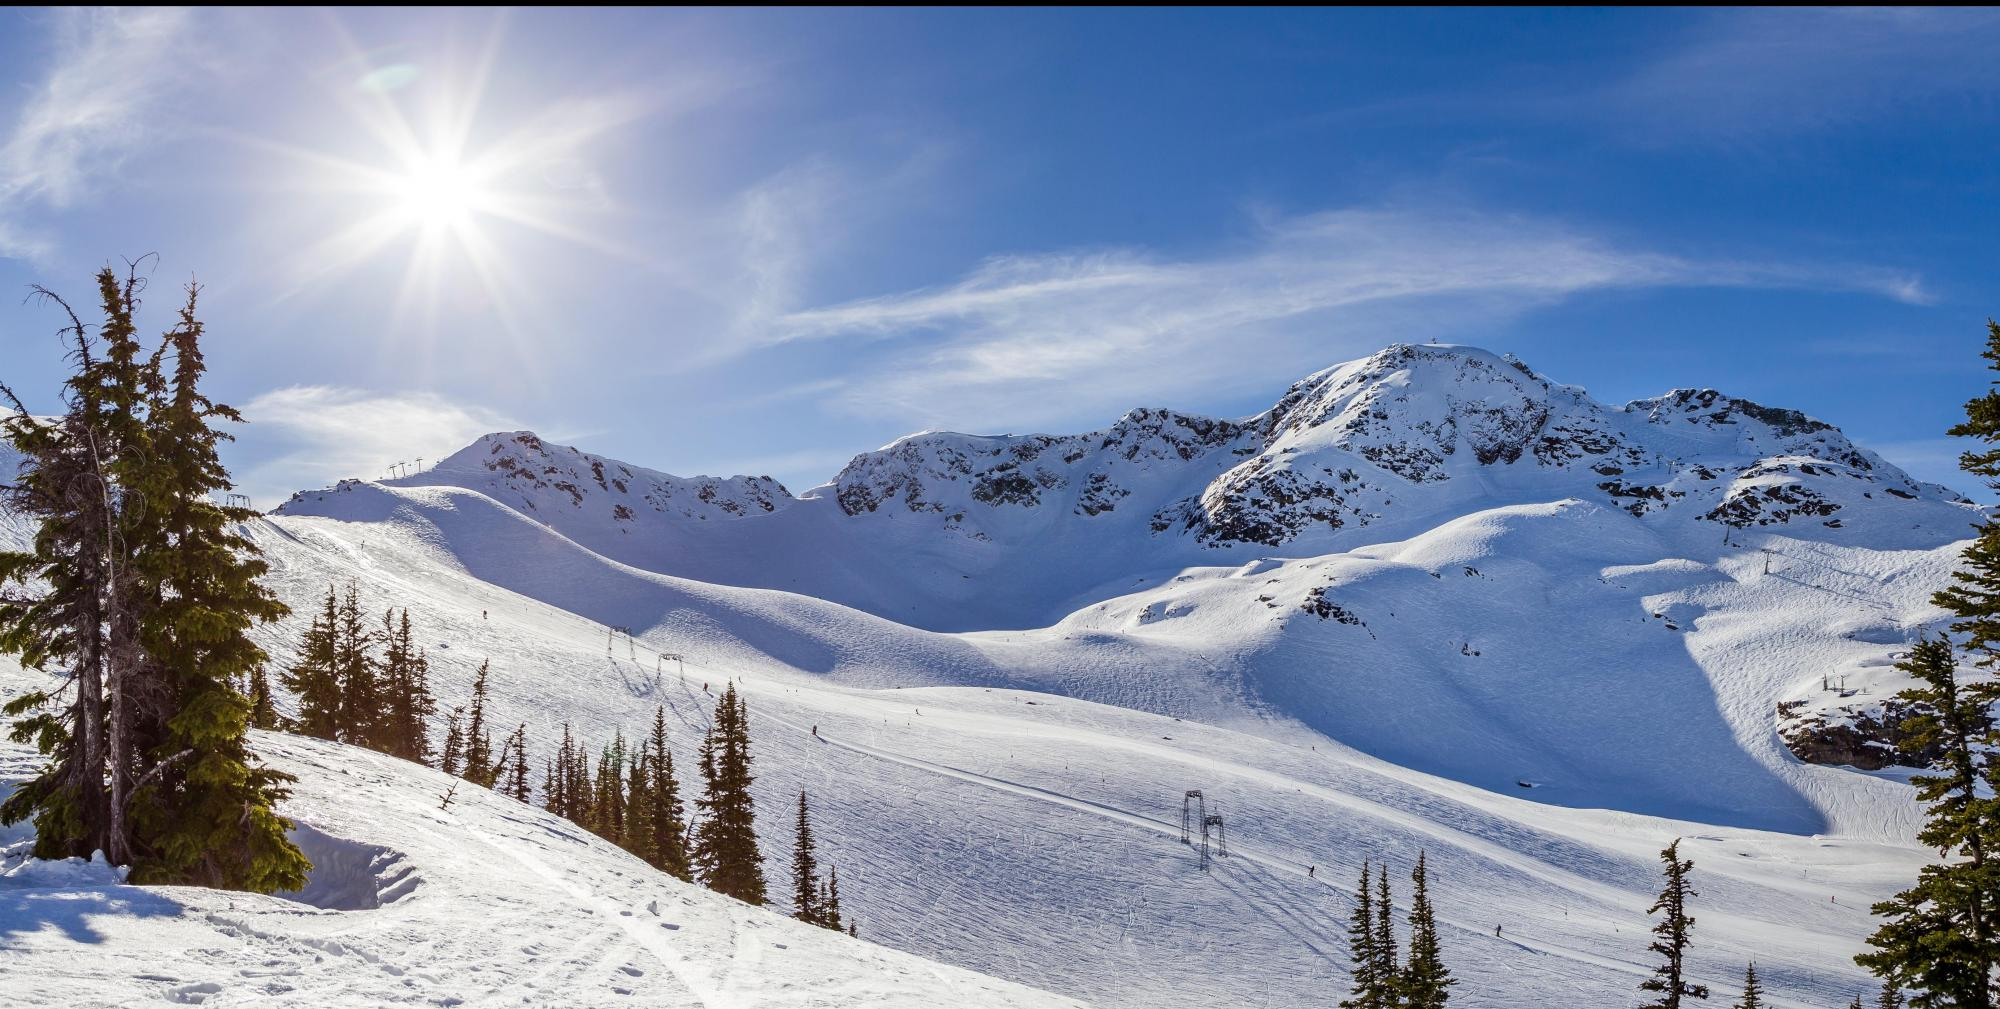 The peak of Whistler Mountain on a sunny day_Adam_Adobe-min